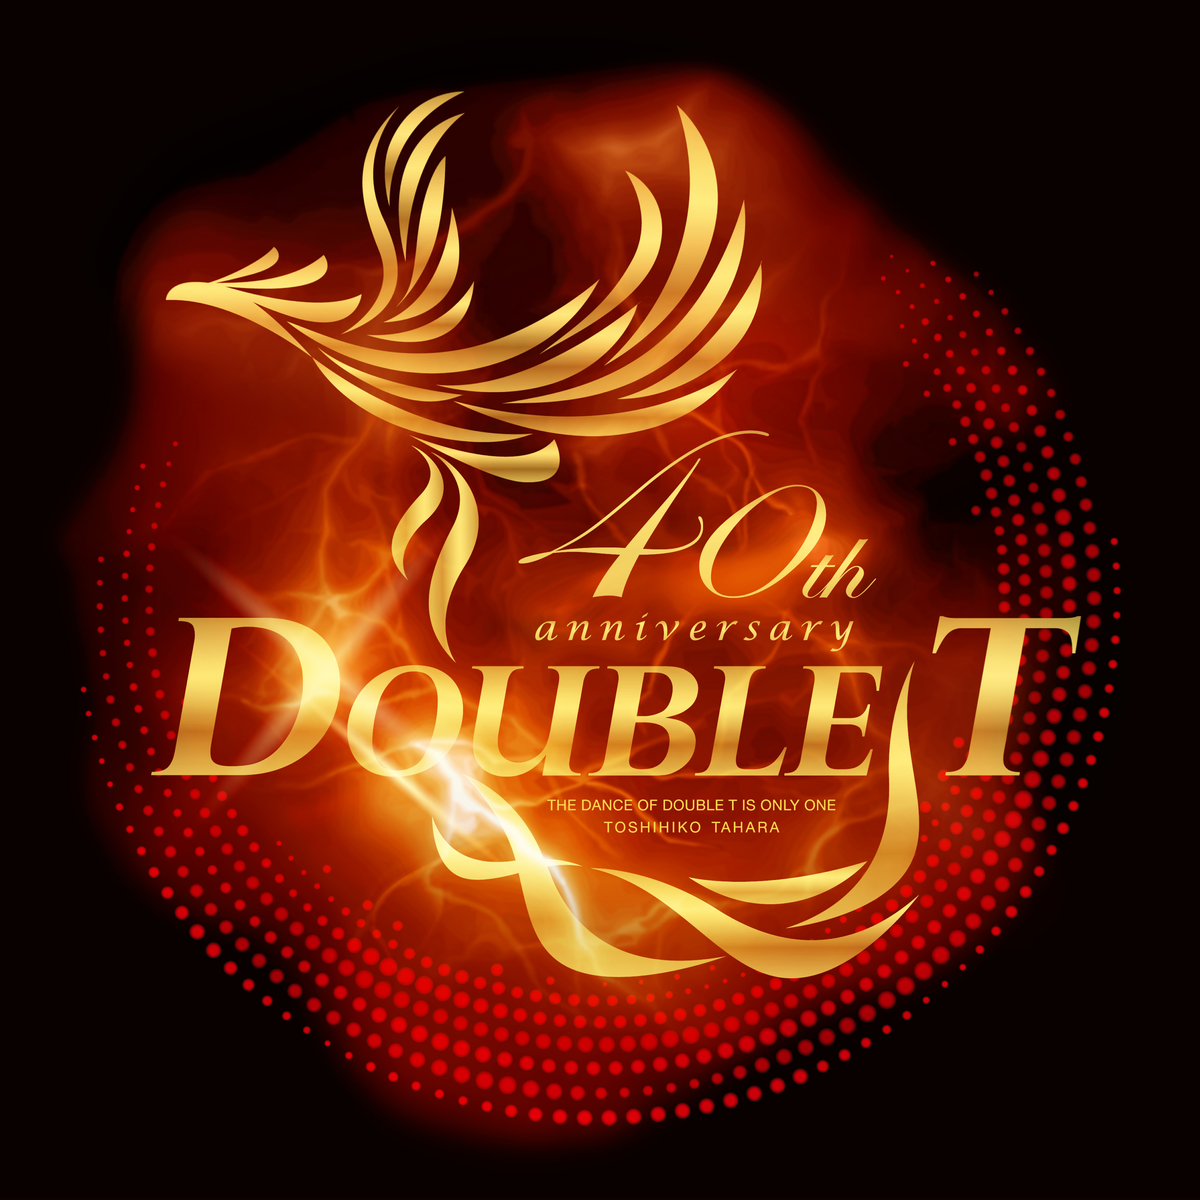 田原俊彦Double T 40th Anniversary